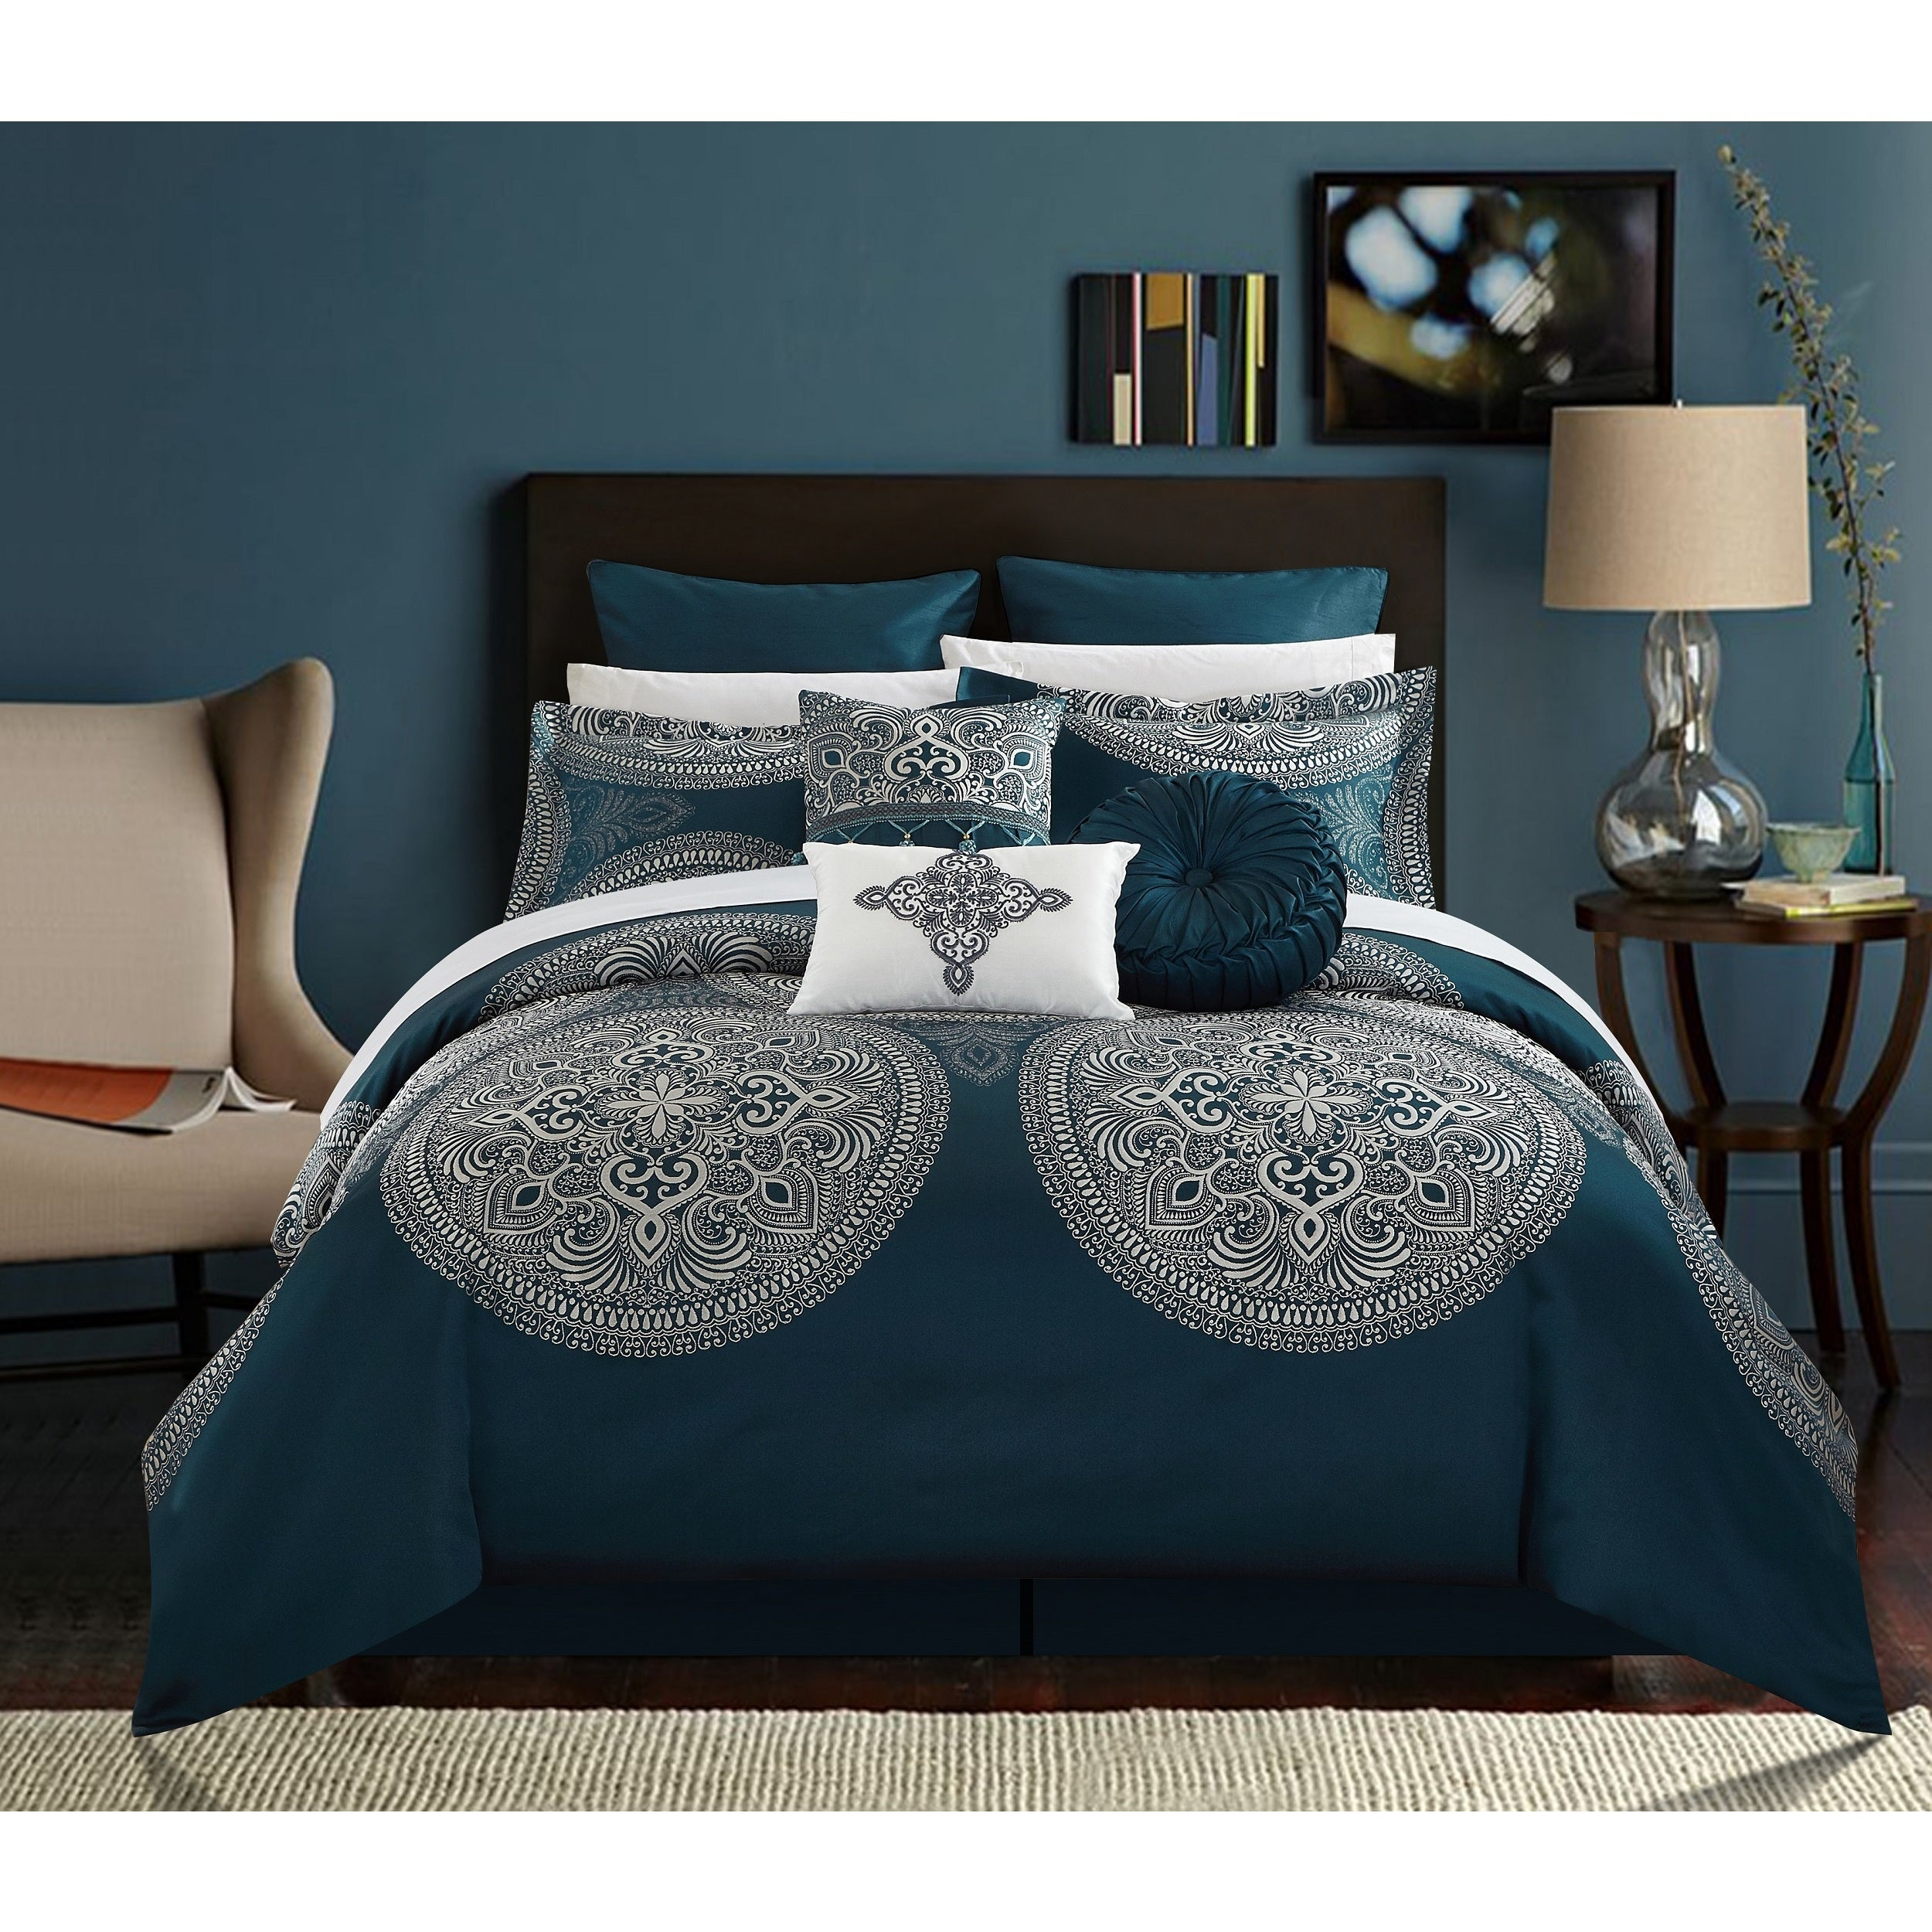 Chic Home 9 Piece Adana Teal Comforter Set On Sale Overstock 18038279 Queen